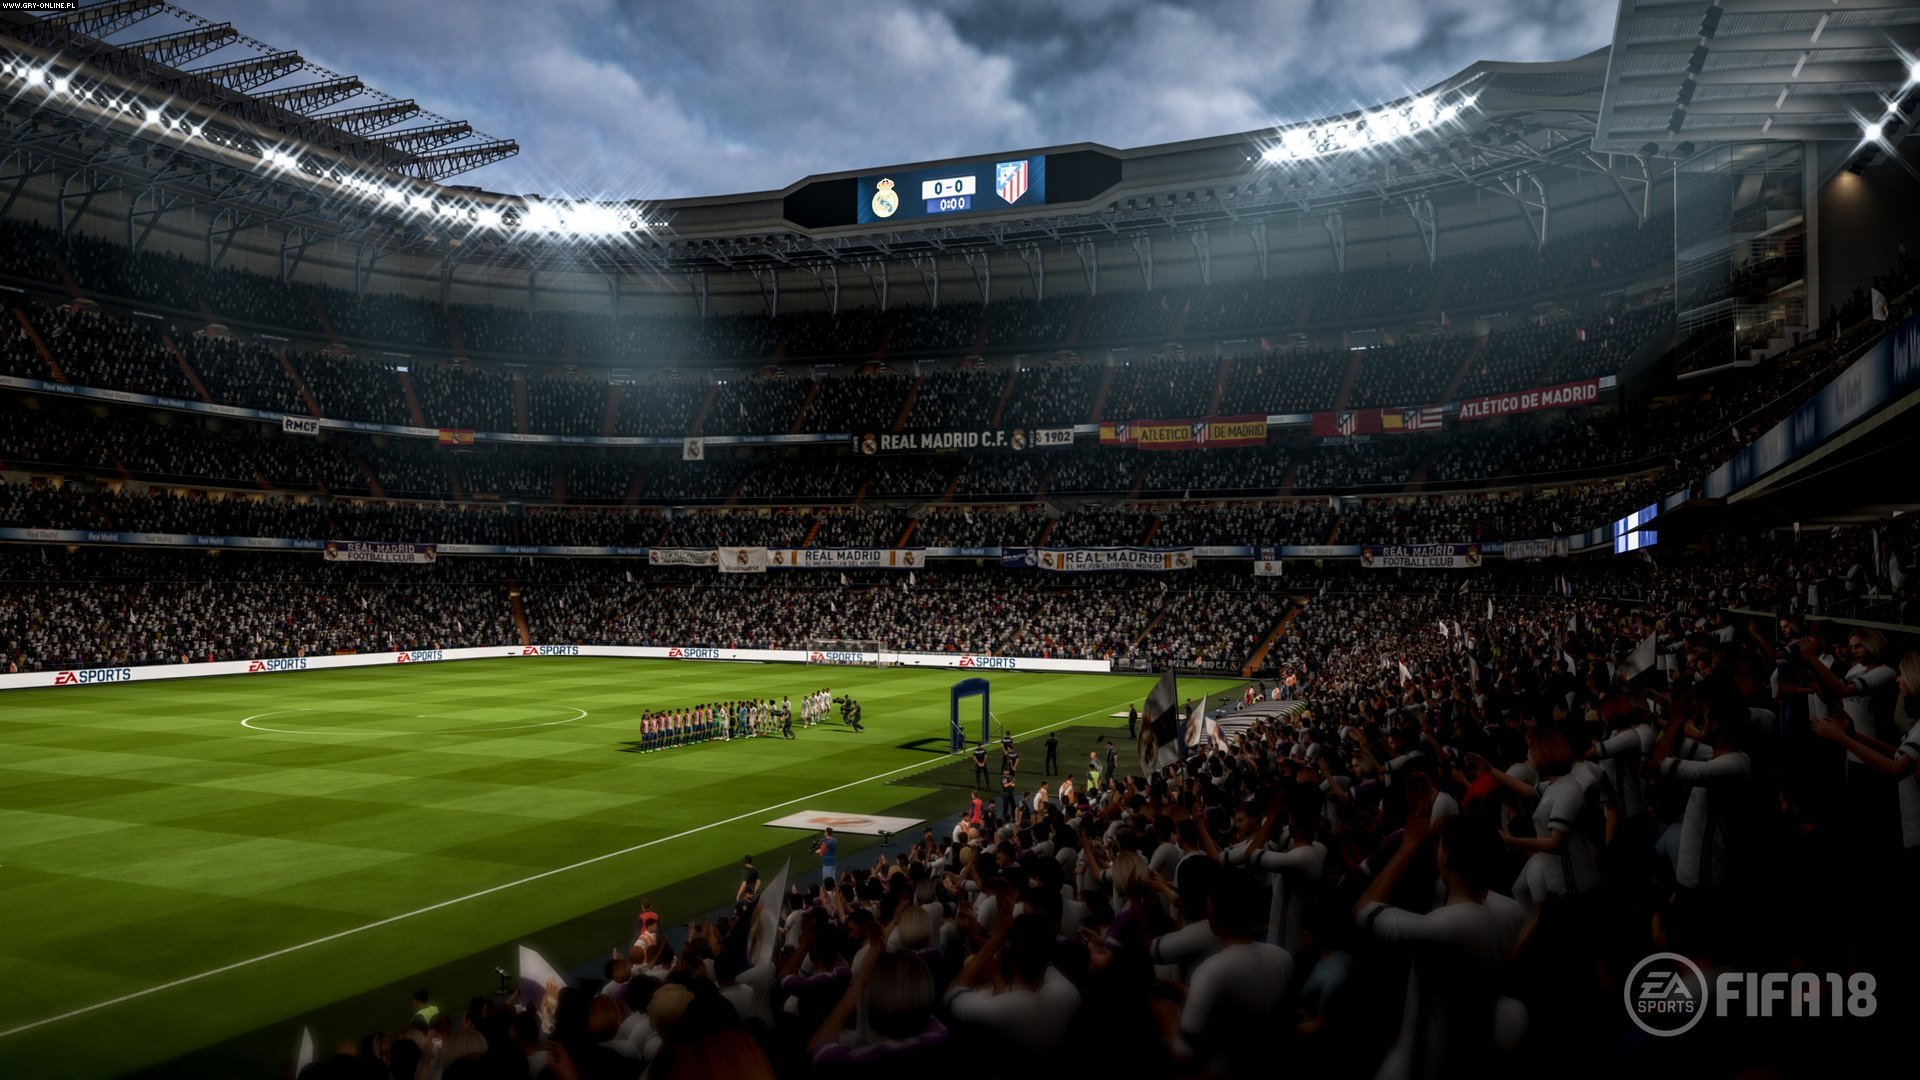 FIFA 18 PC, PS4, XONE Games Image 4/9, EA Sports, Electronic Arts Inc.